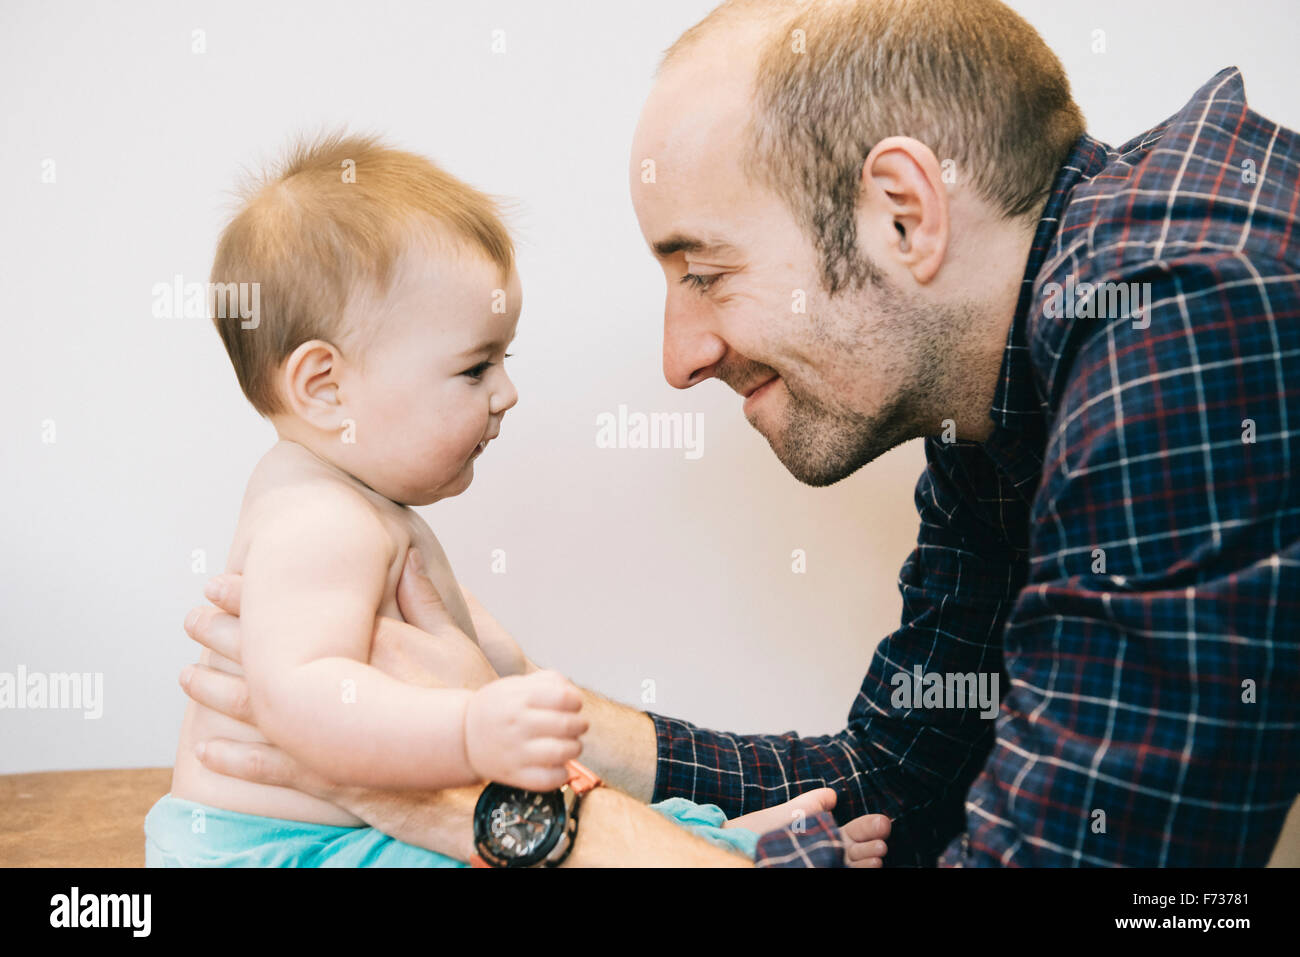 A young baby girl and her father face to face playing. - Stock Image